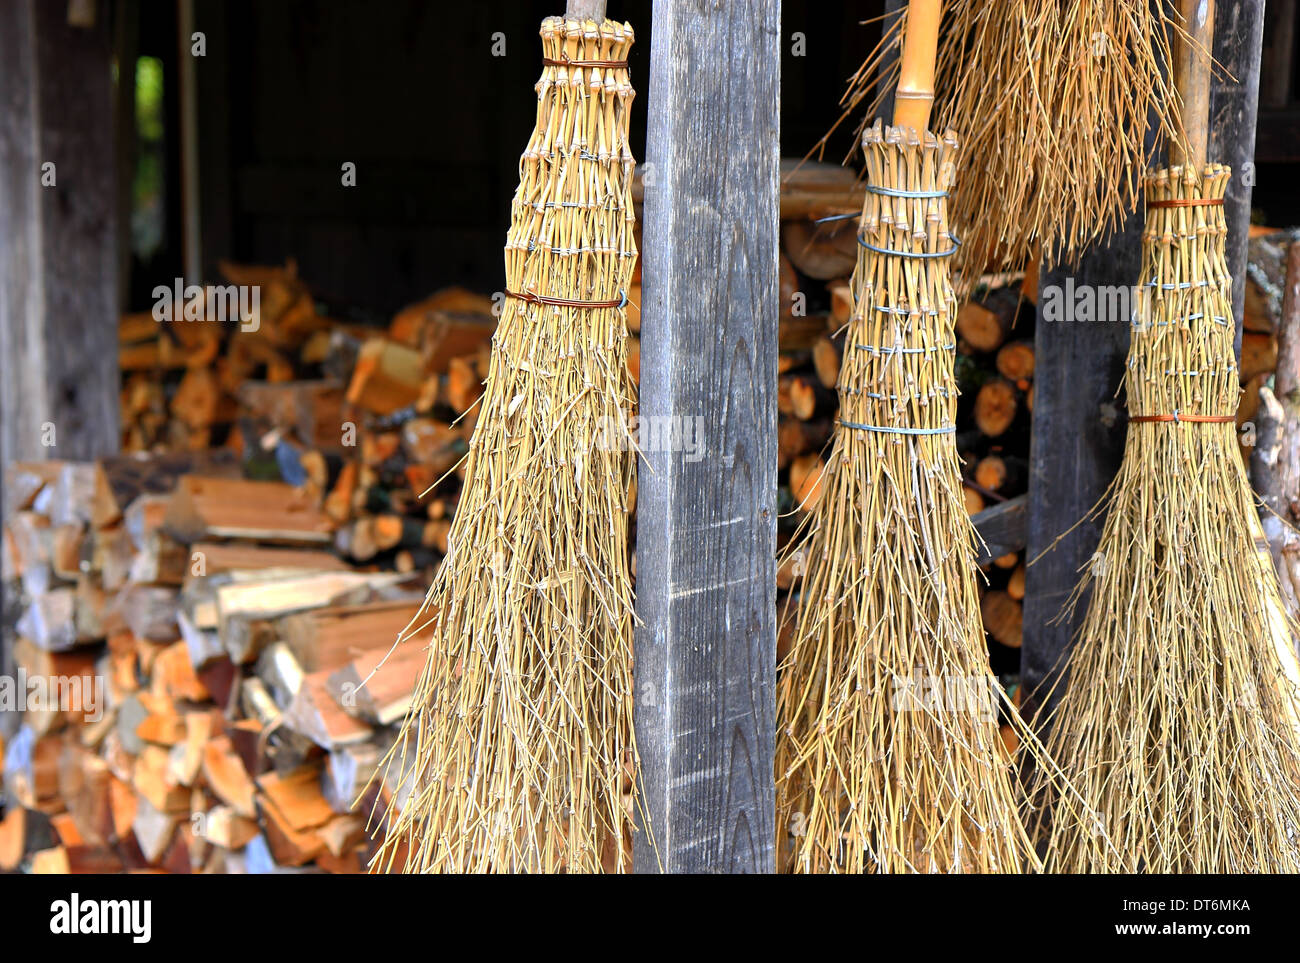 Straw Broom And House Stock Photos Amp Straw Broom And House